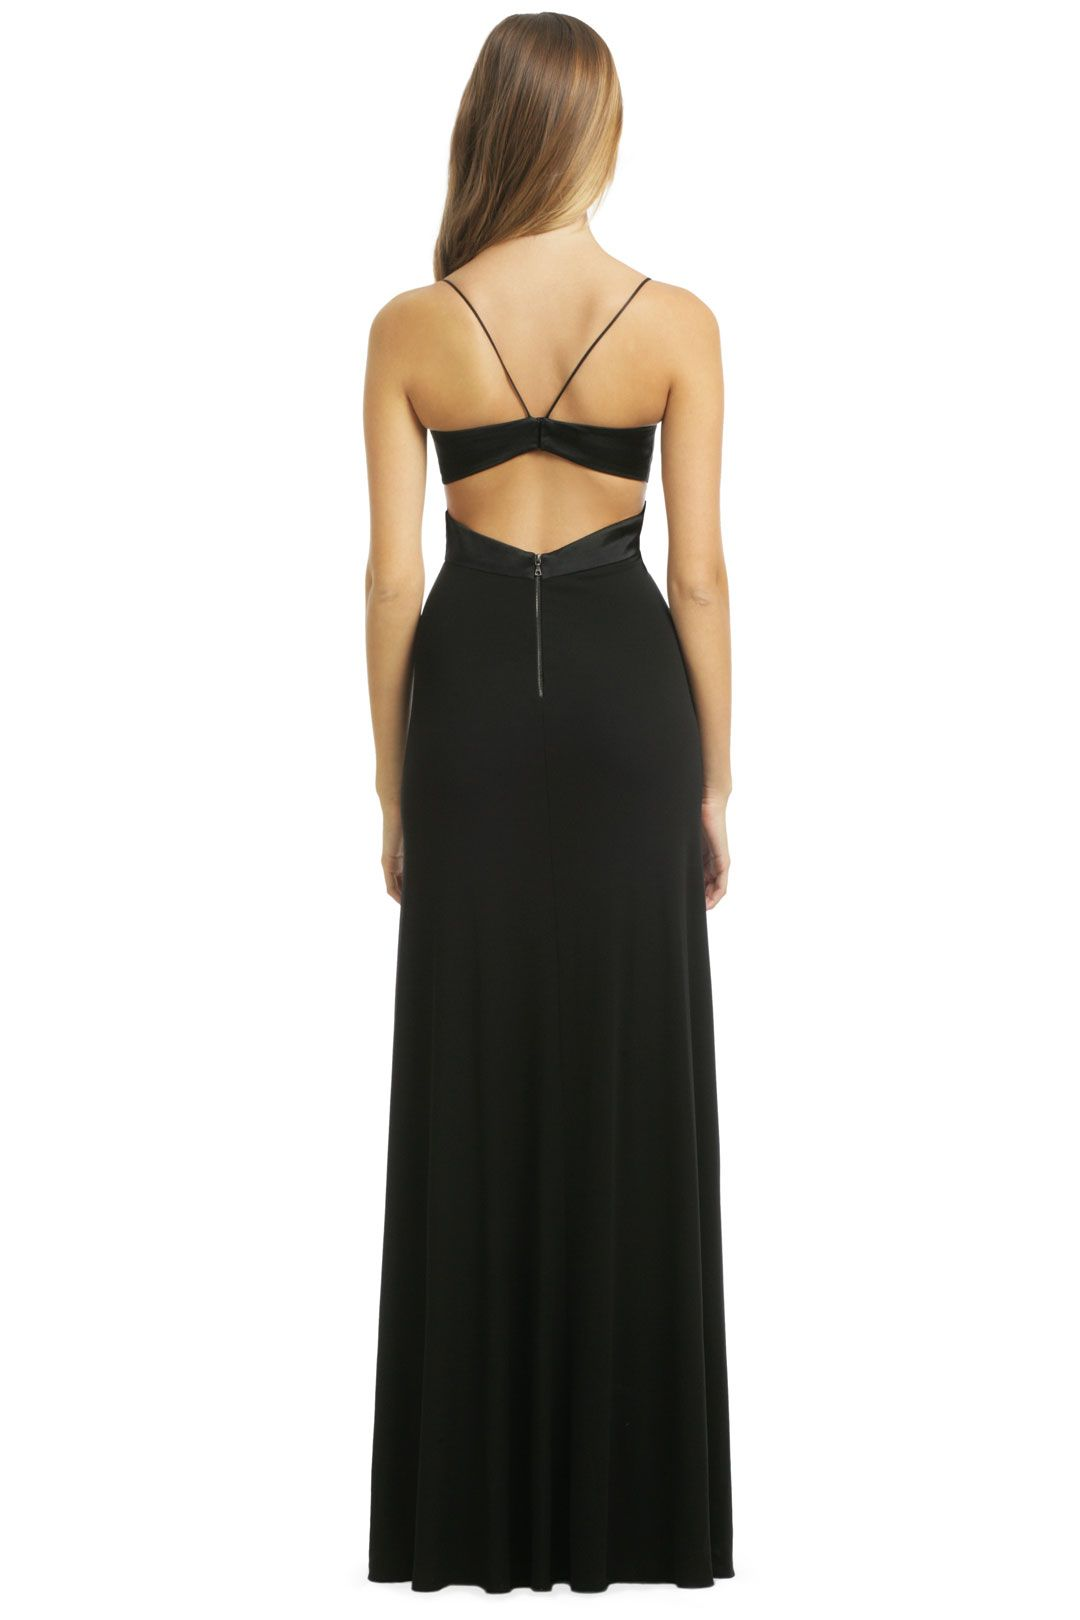 Getting into mischief gown narciso rodriguez gowns and prom night